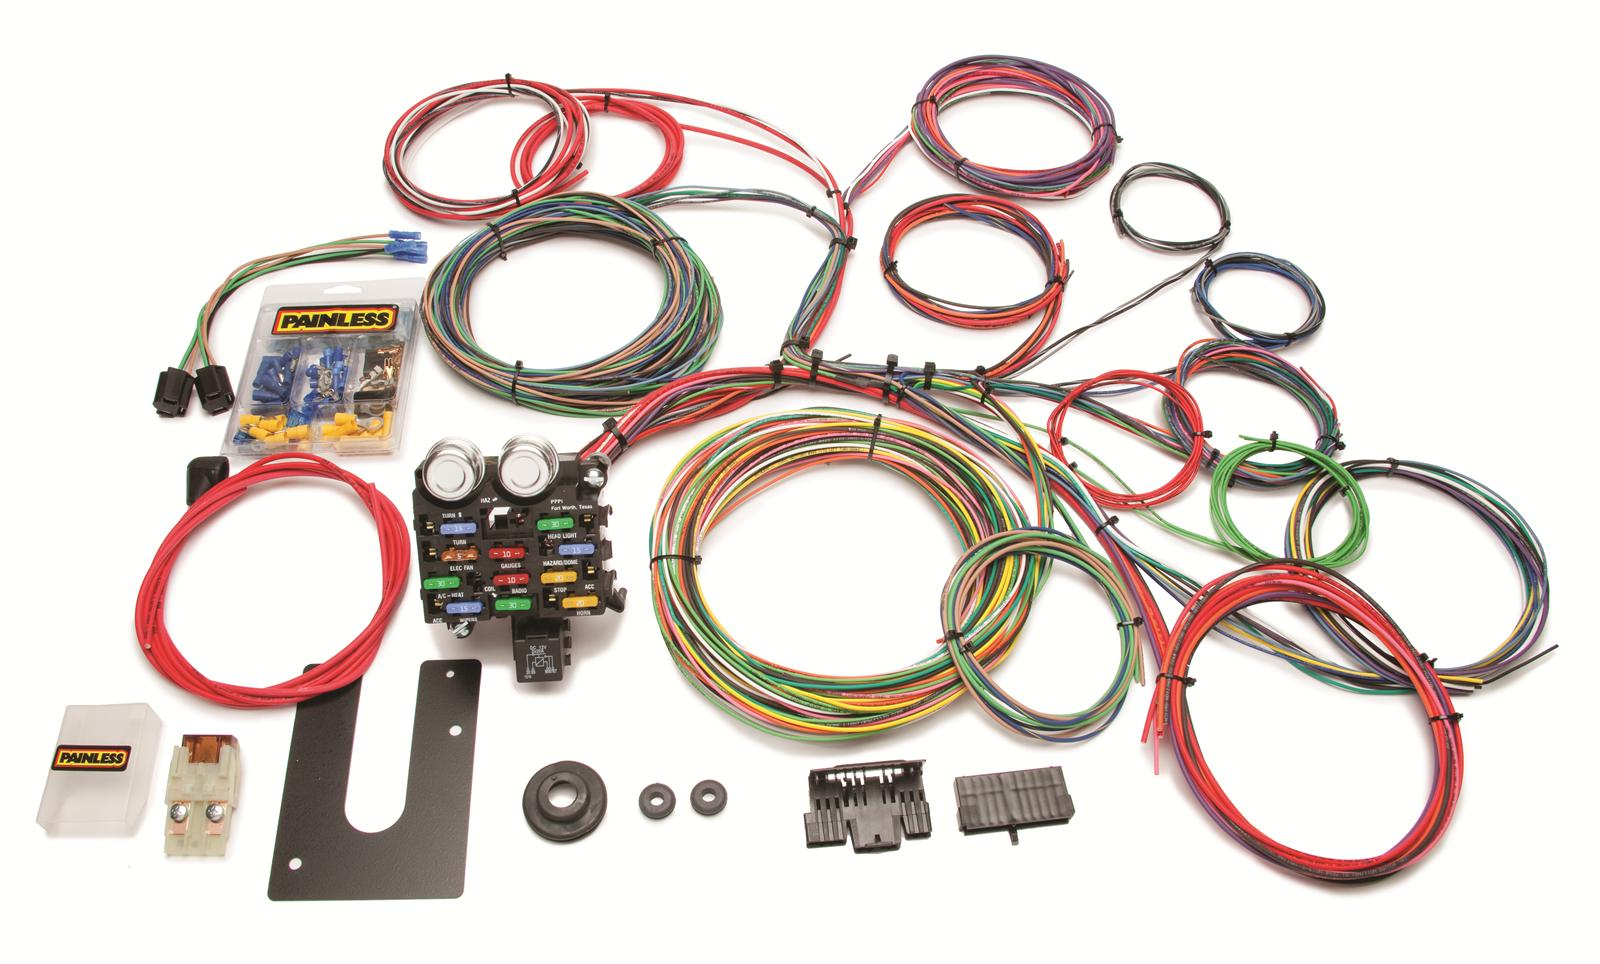 Painless Performance 21-Circuit Universal Harnesses 10102 - Free Shipping  on Orders Over $49 at Summit Racing